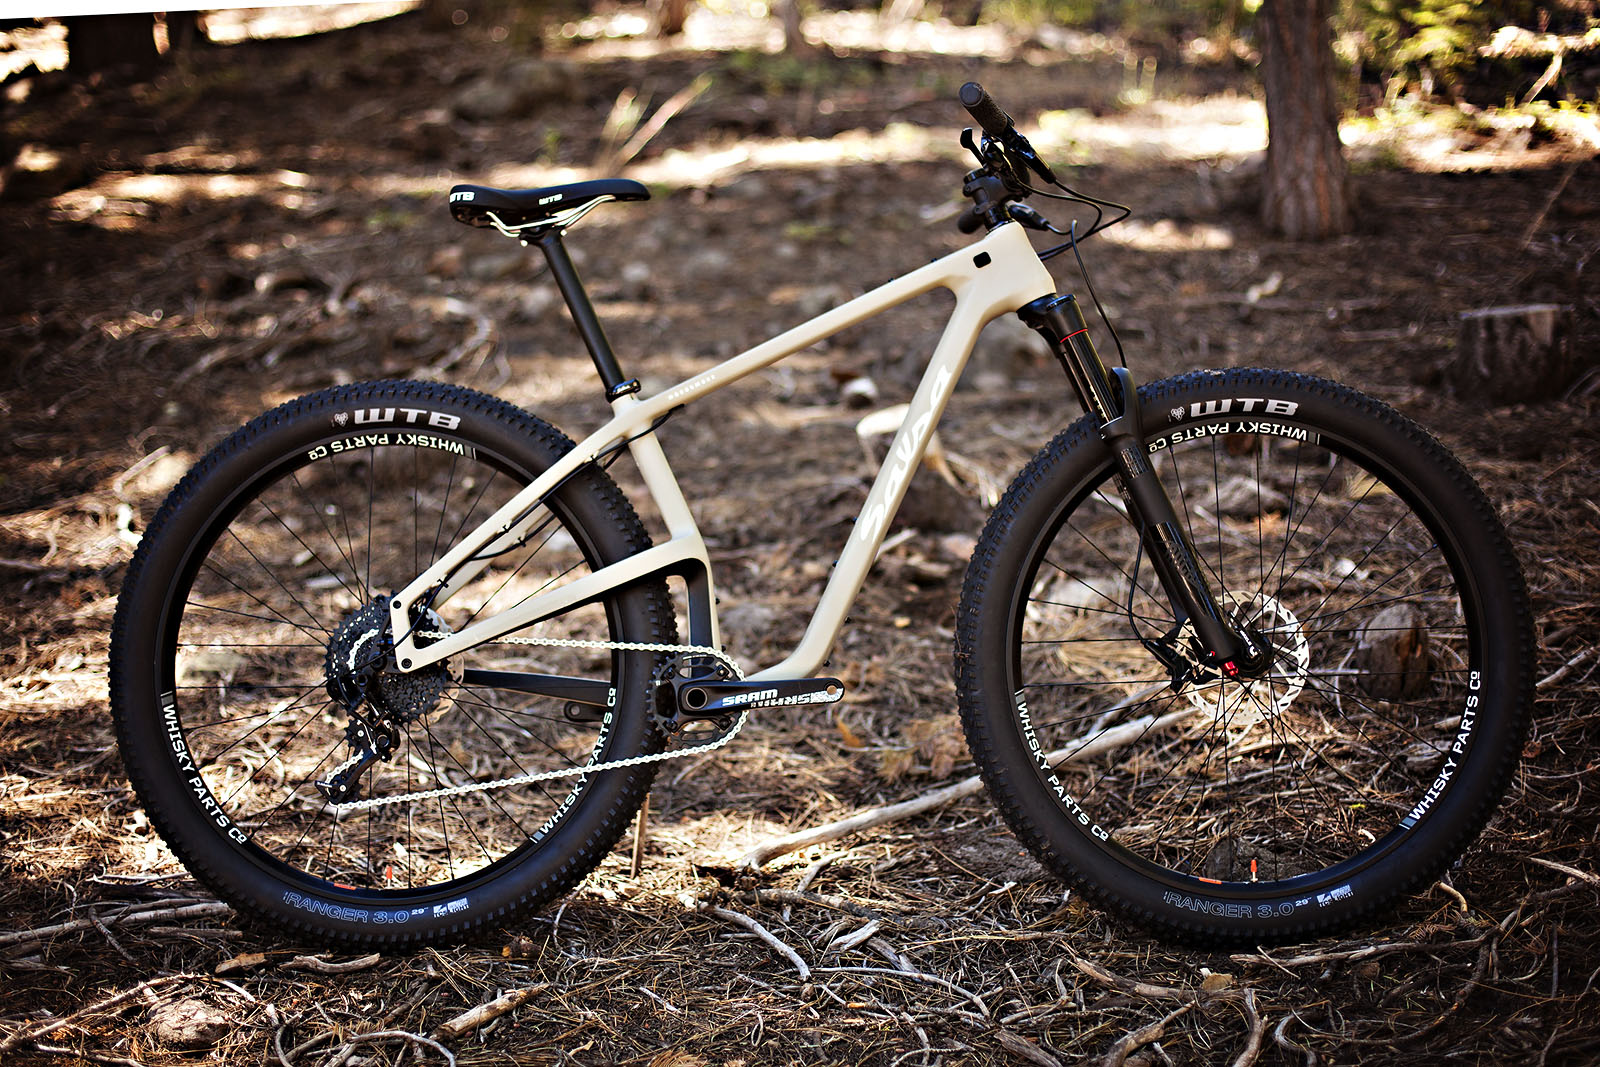 The $3000 GX1 build kit gets a 120-mil-travel RockShox Yari RC, SRAM GX drivetrain and Level brakes.